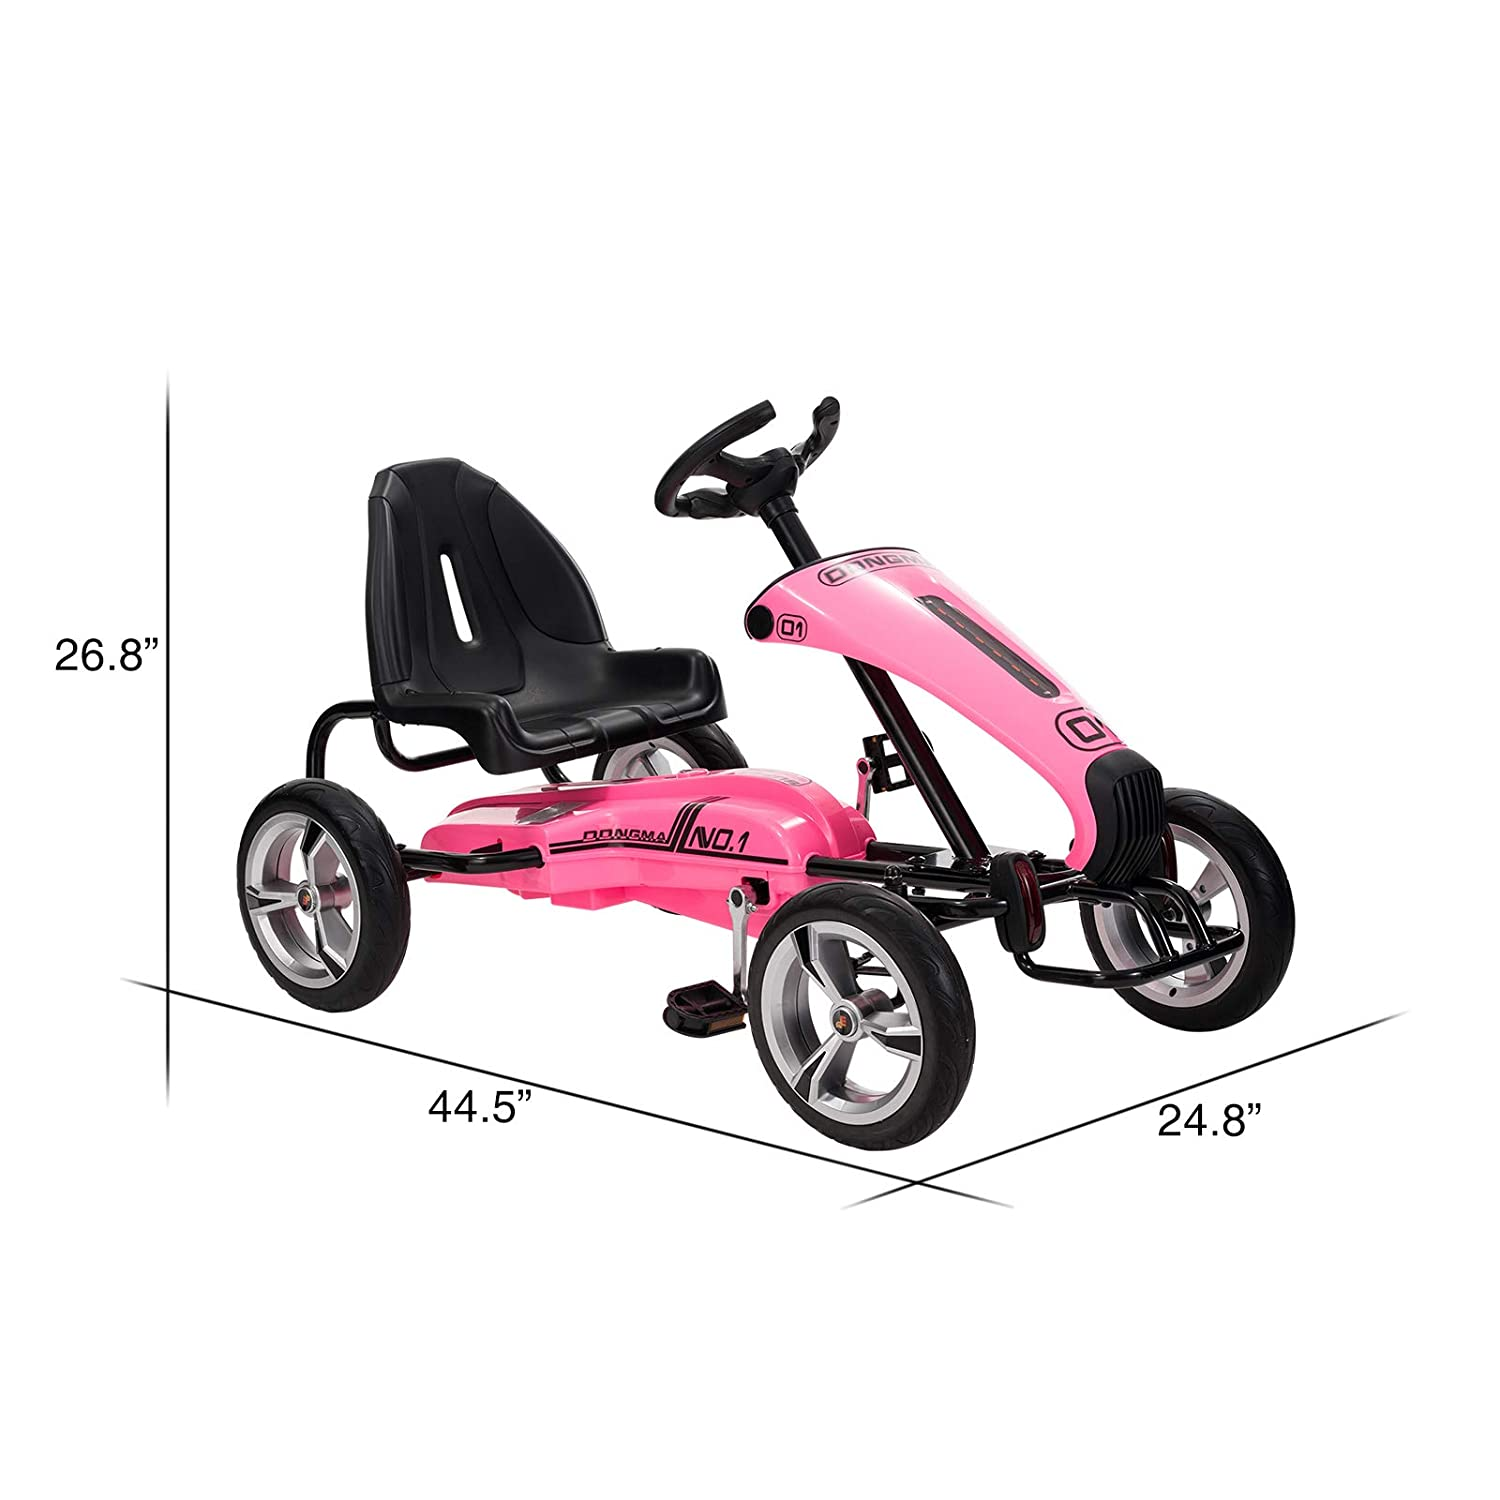 Sports Steering Wheel Pink Uenjoy Pedal Go Kart Pedal Cars with Adjustable Seat